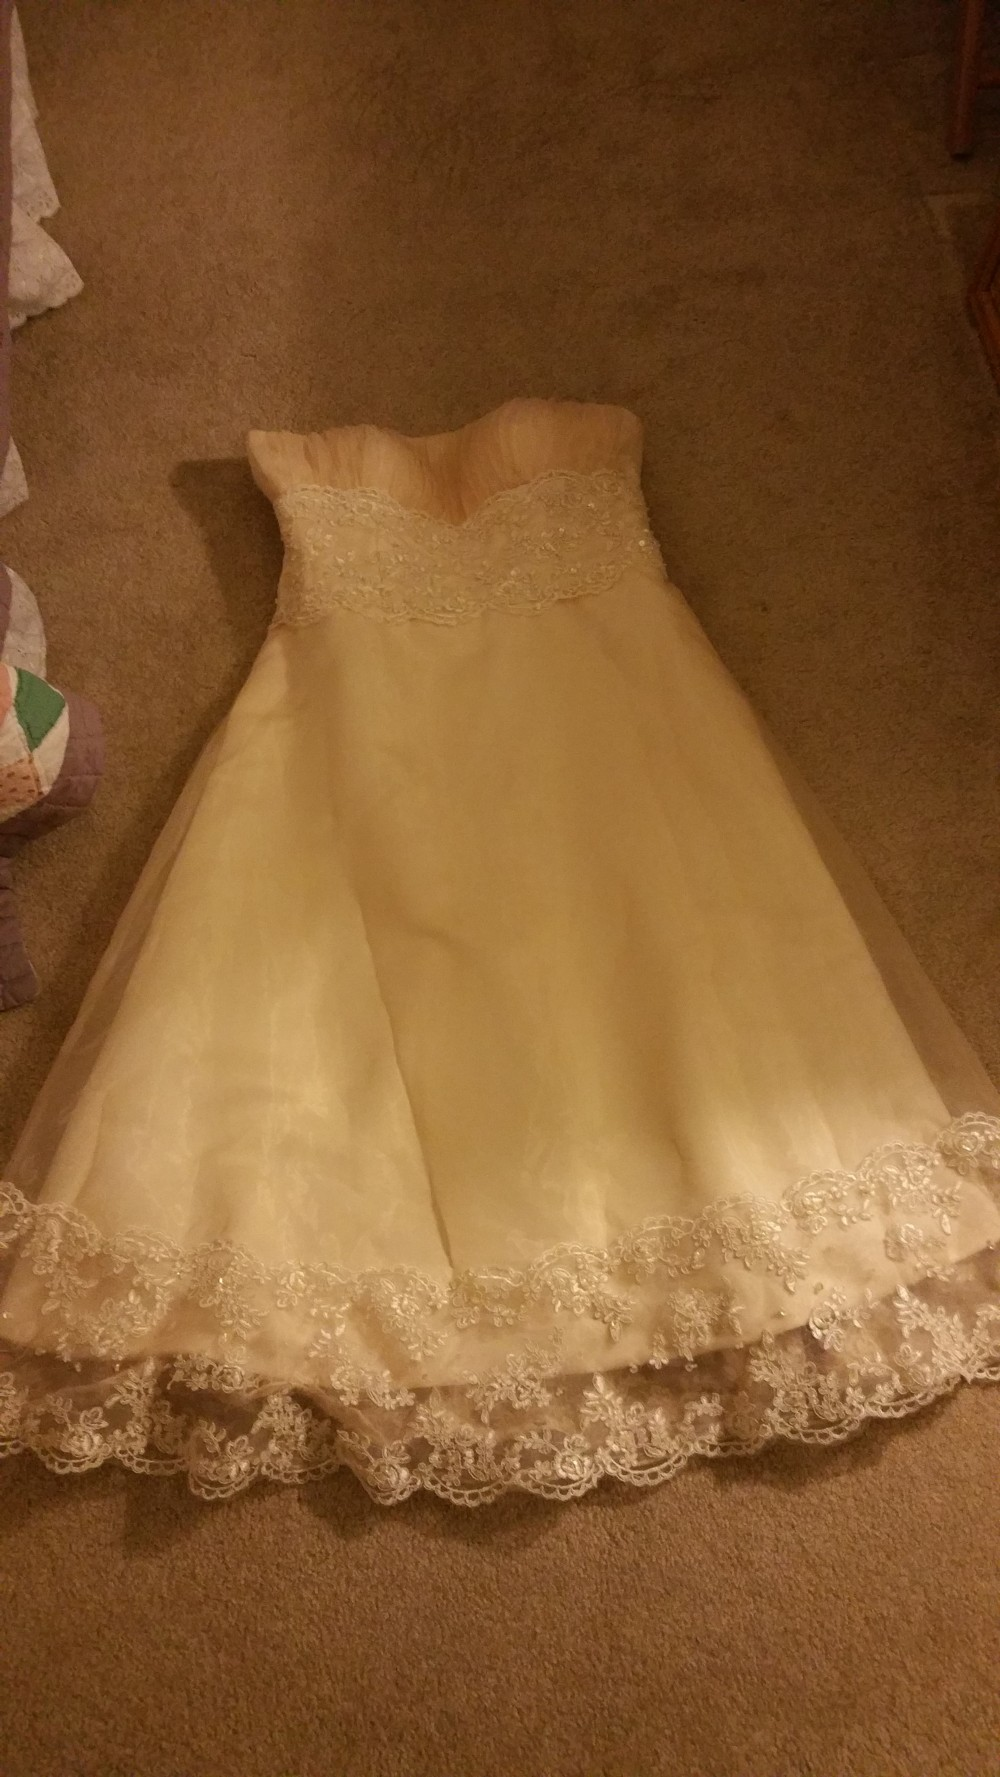 Tb dress new wedding dress on sale 24 off for Wedding dresses lowell ma